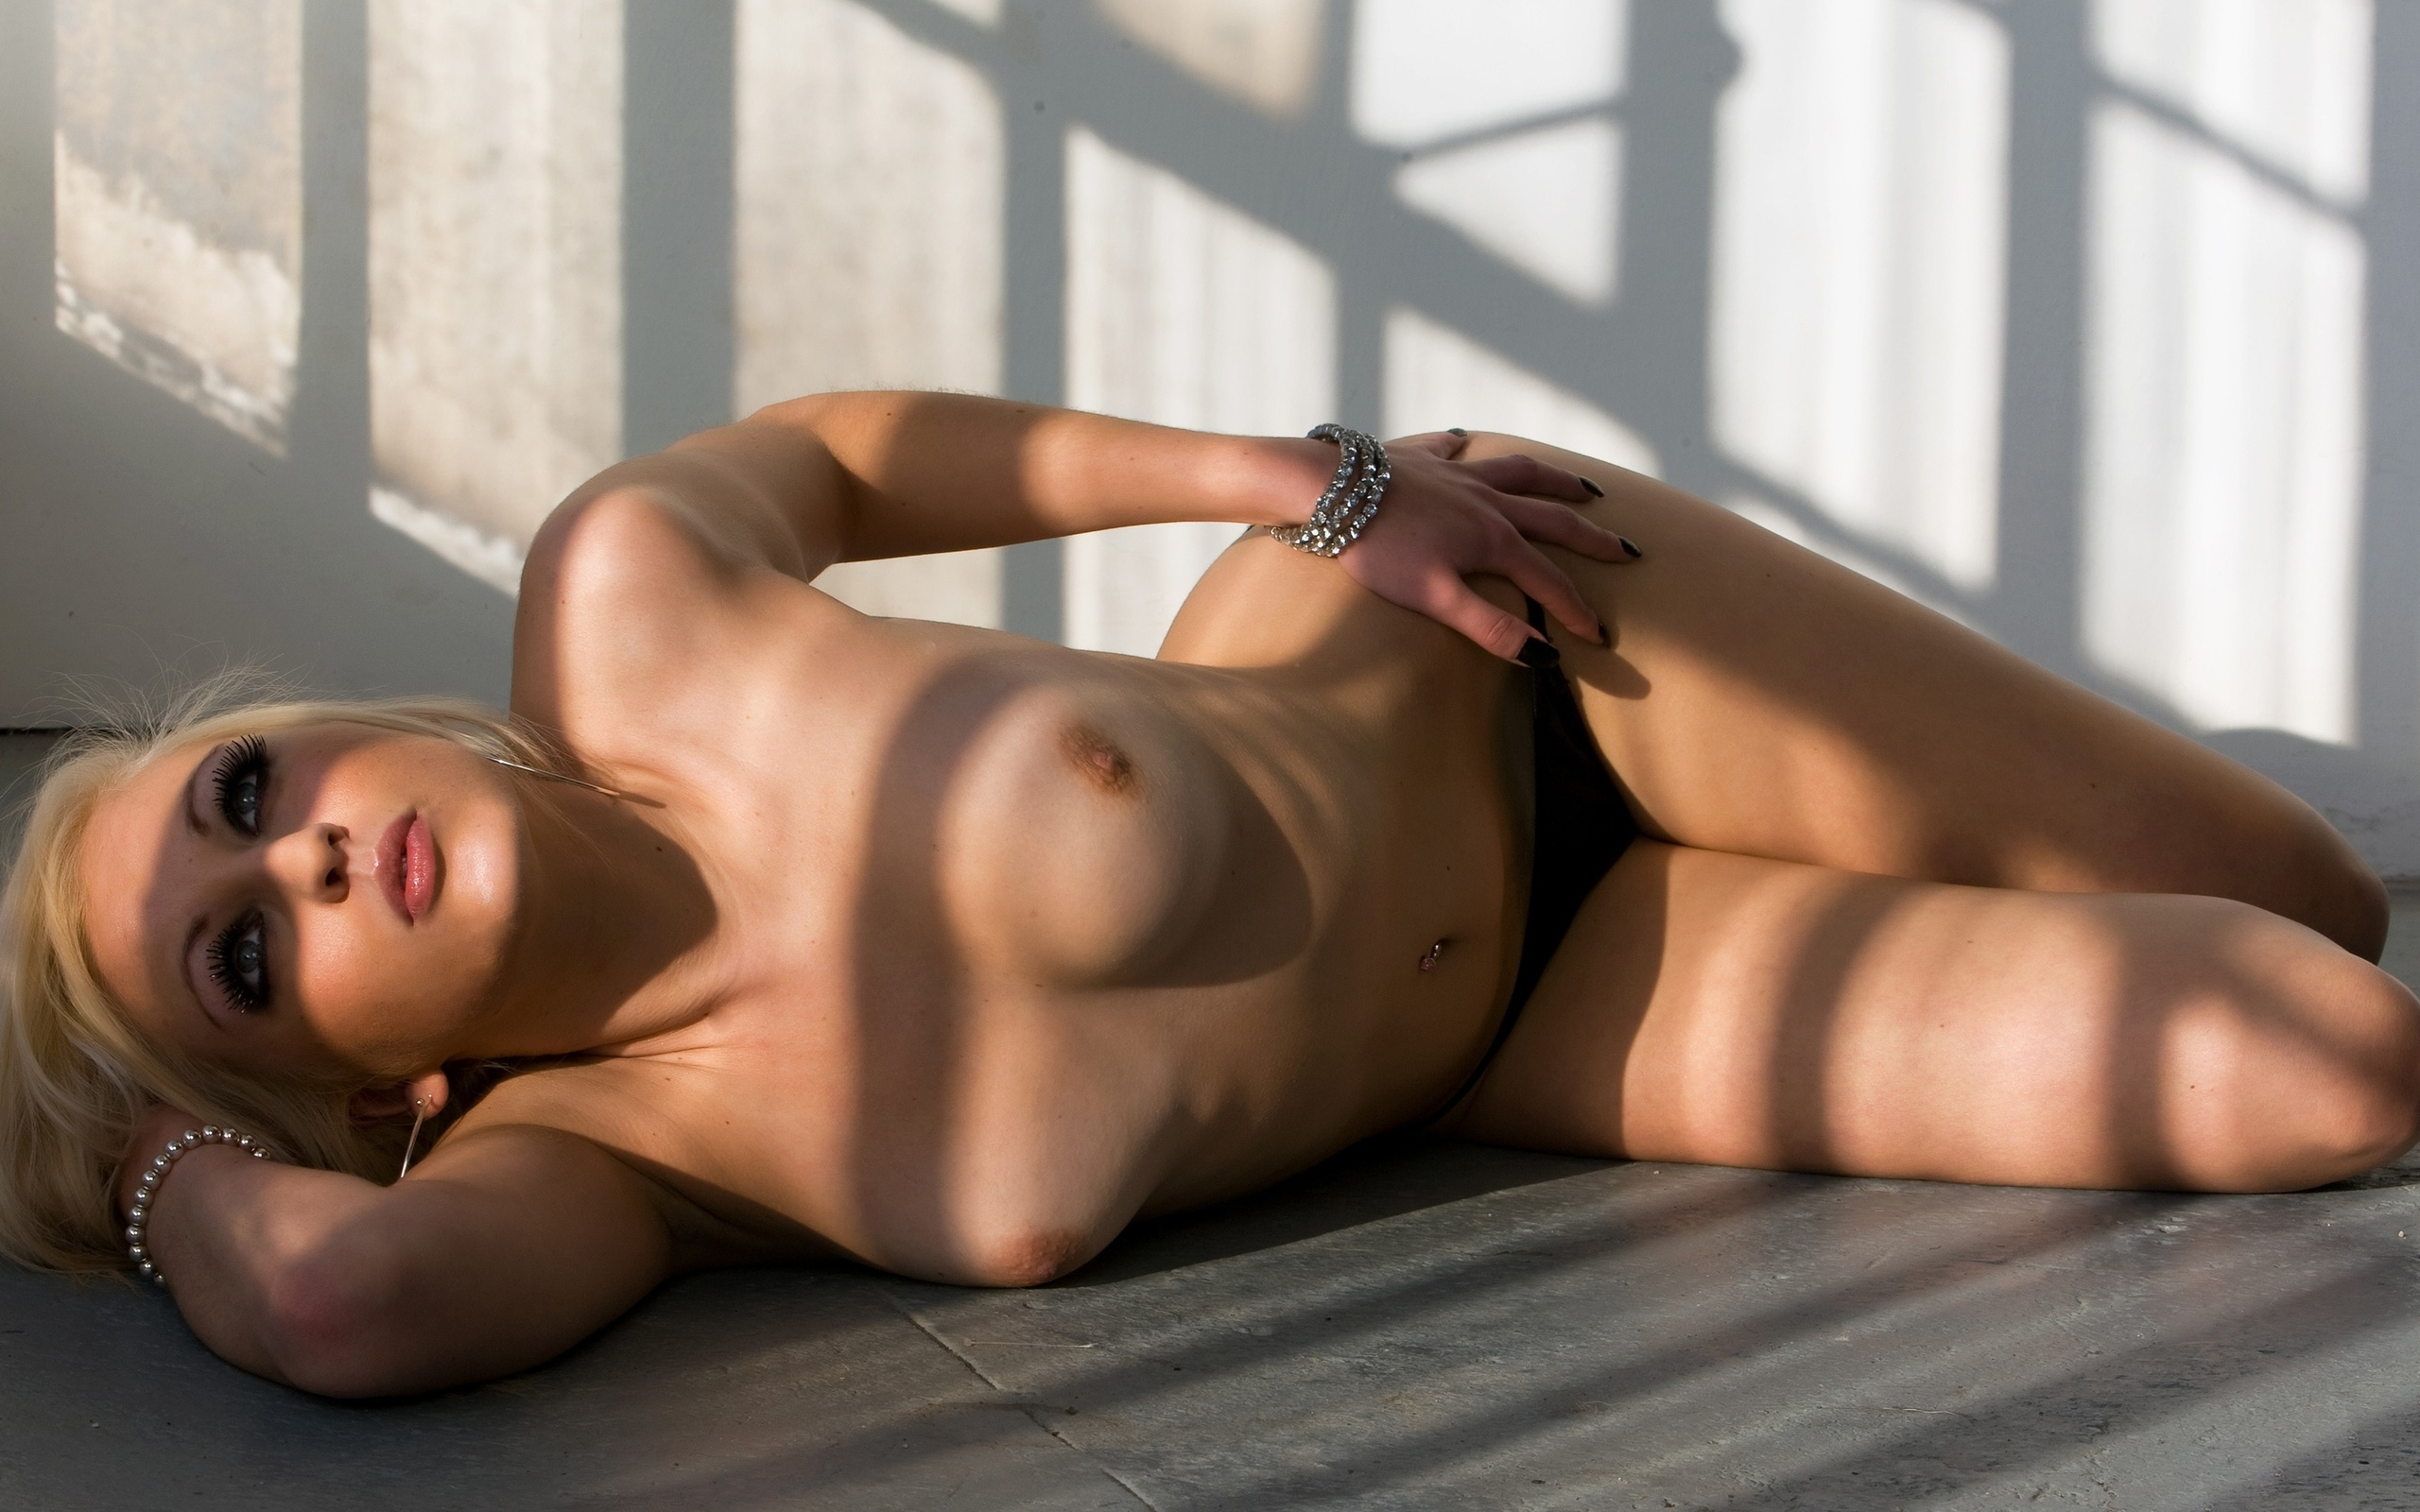 Hot Naked Girls Porn And Nude Teen Pics